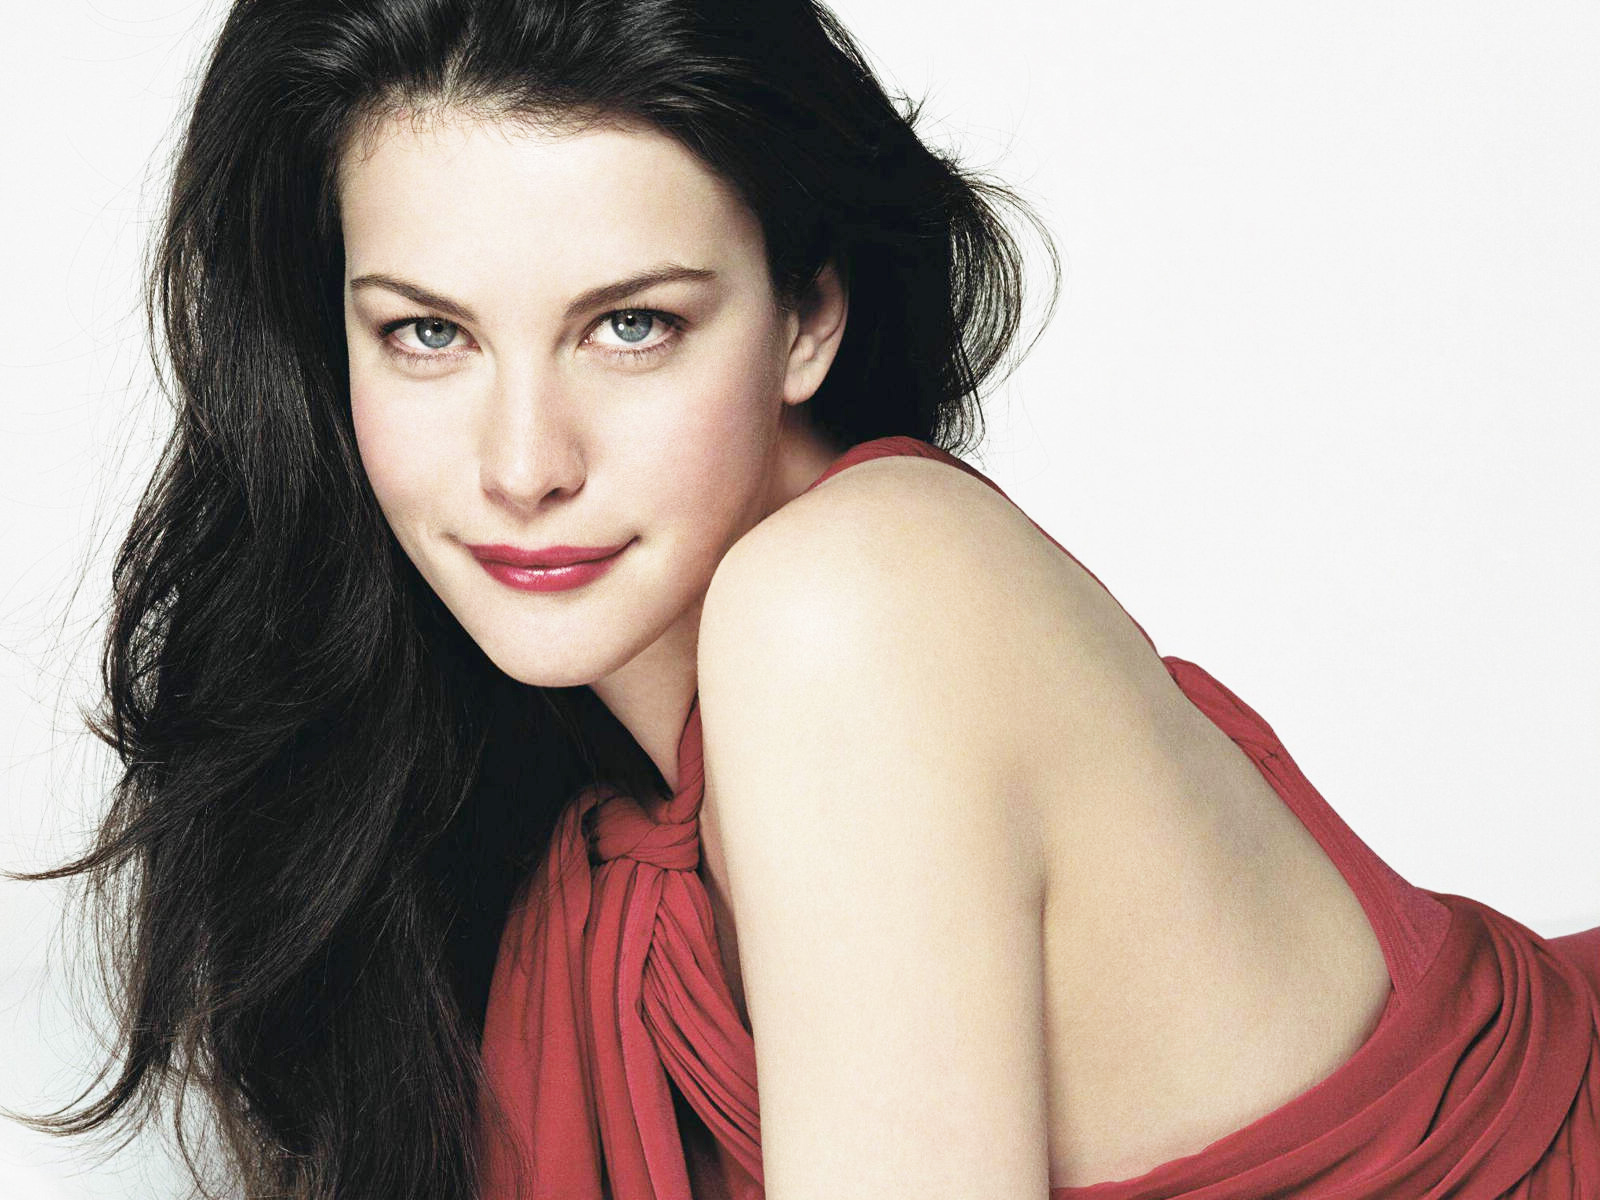 she is beautiful and attractive actress